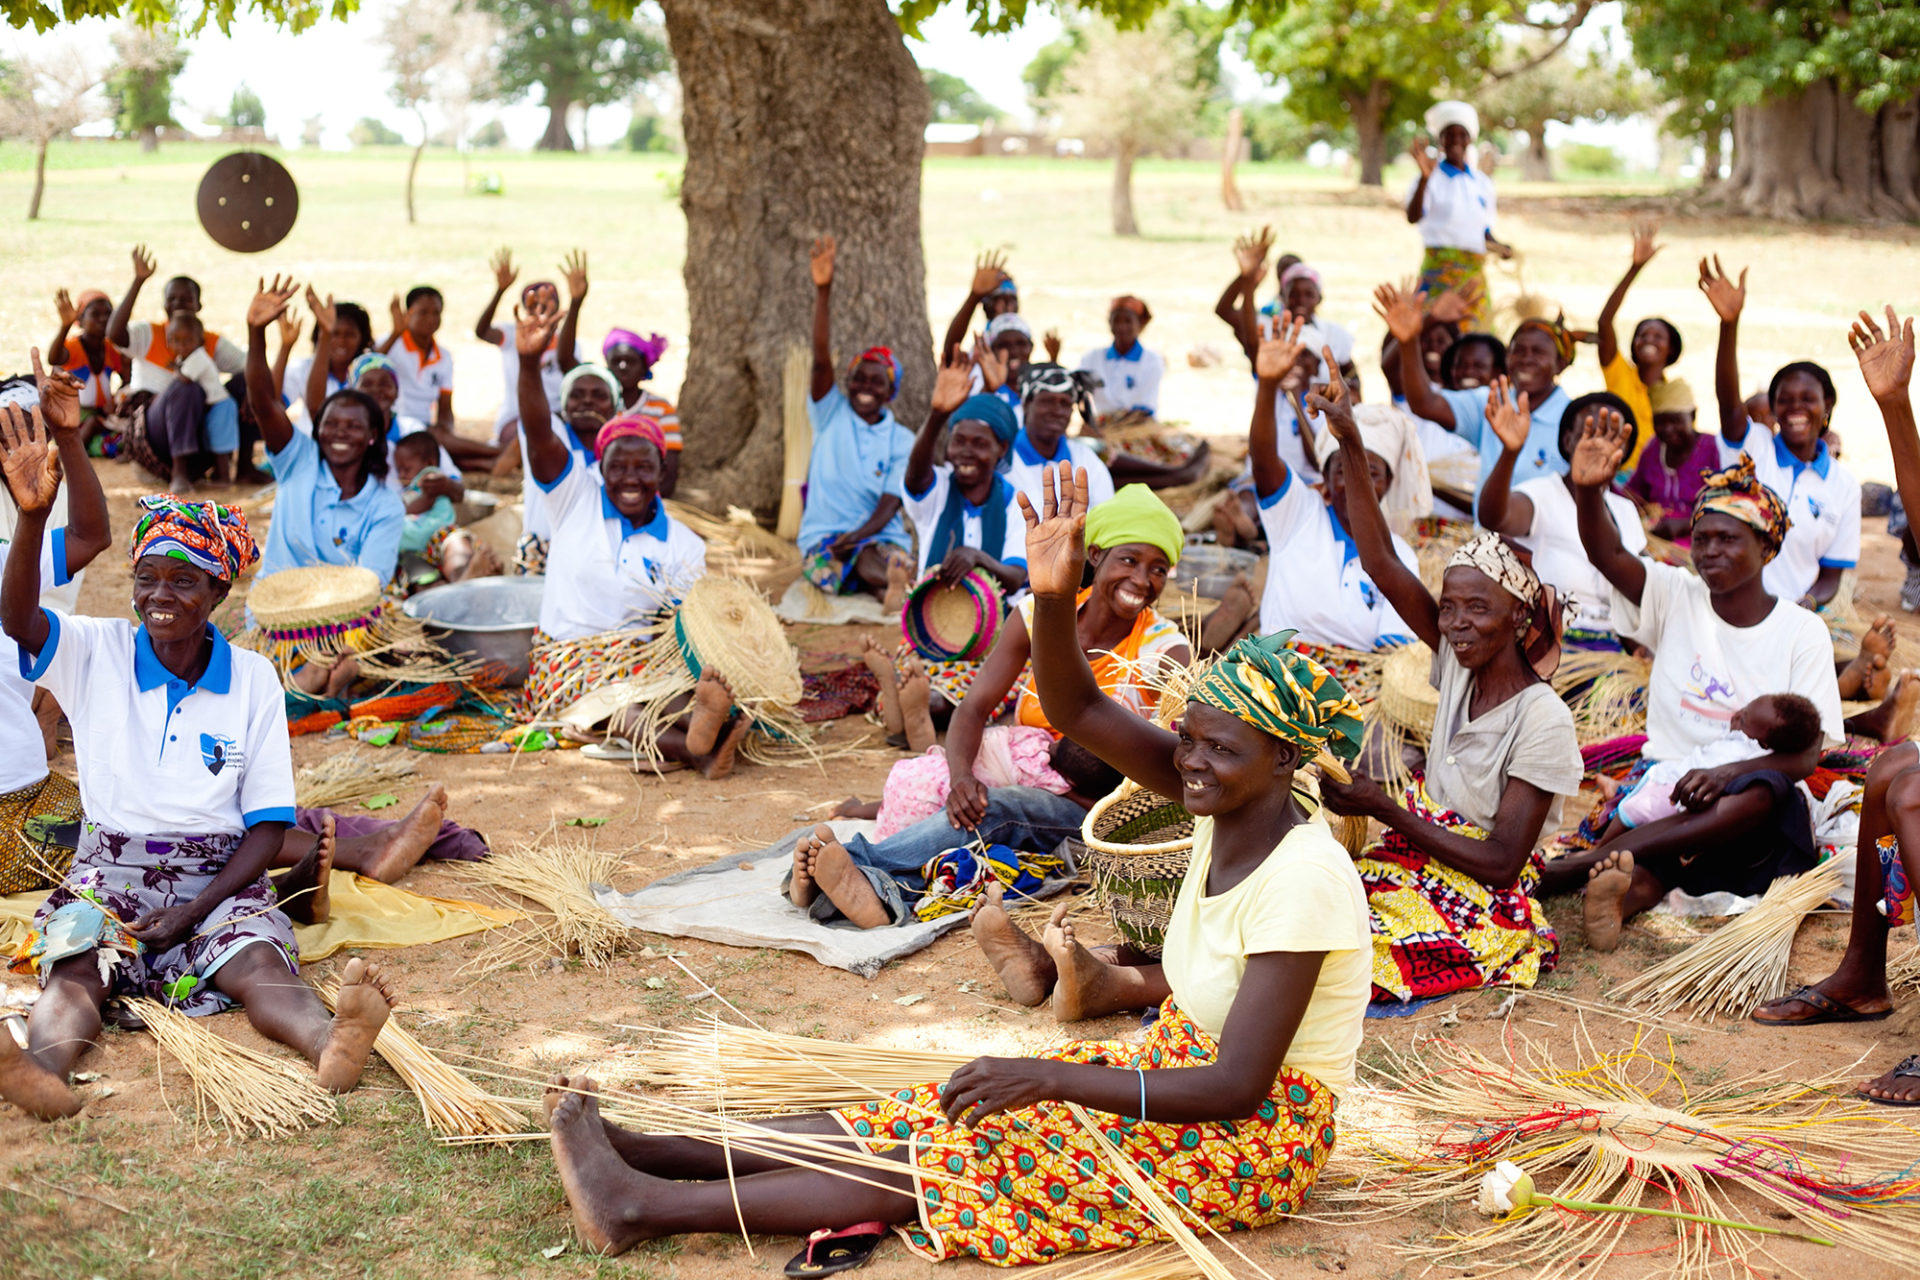 A group of women sit on the ground making baskets